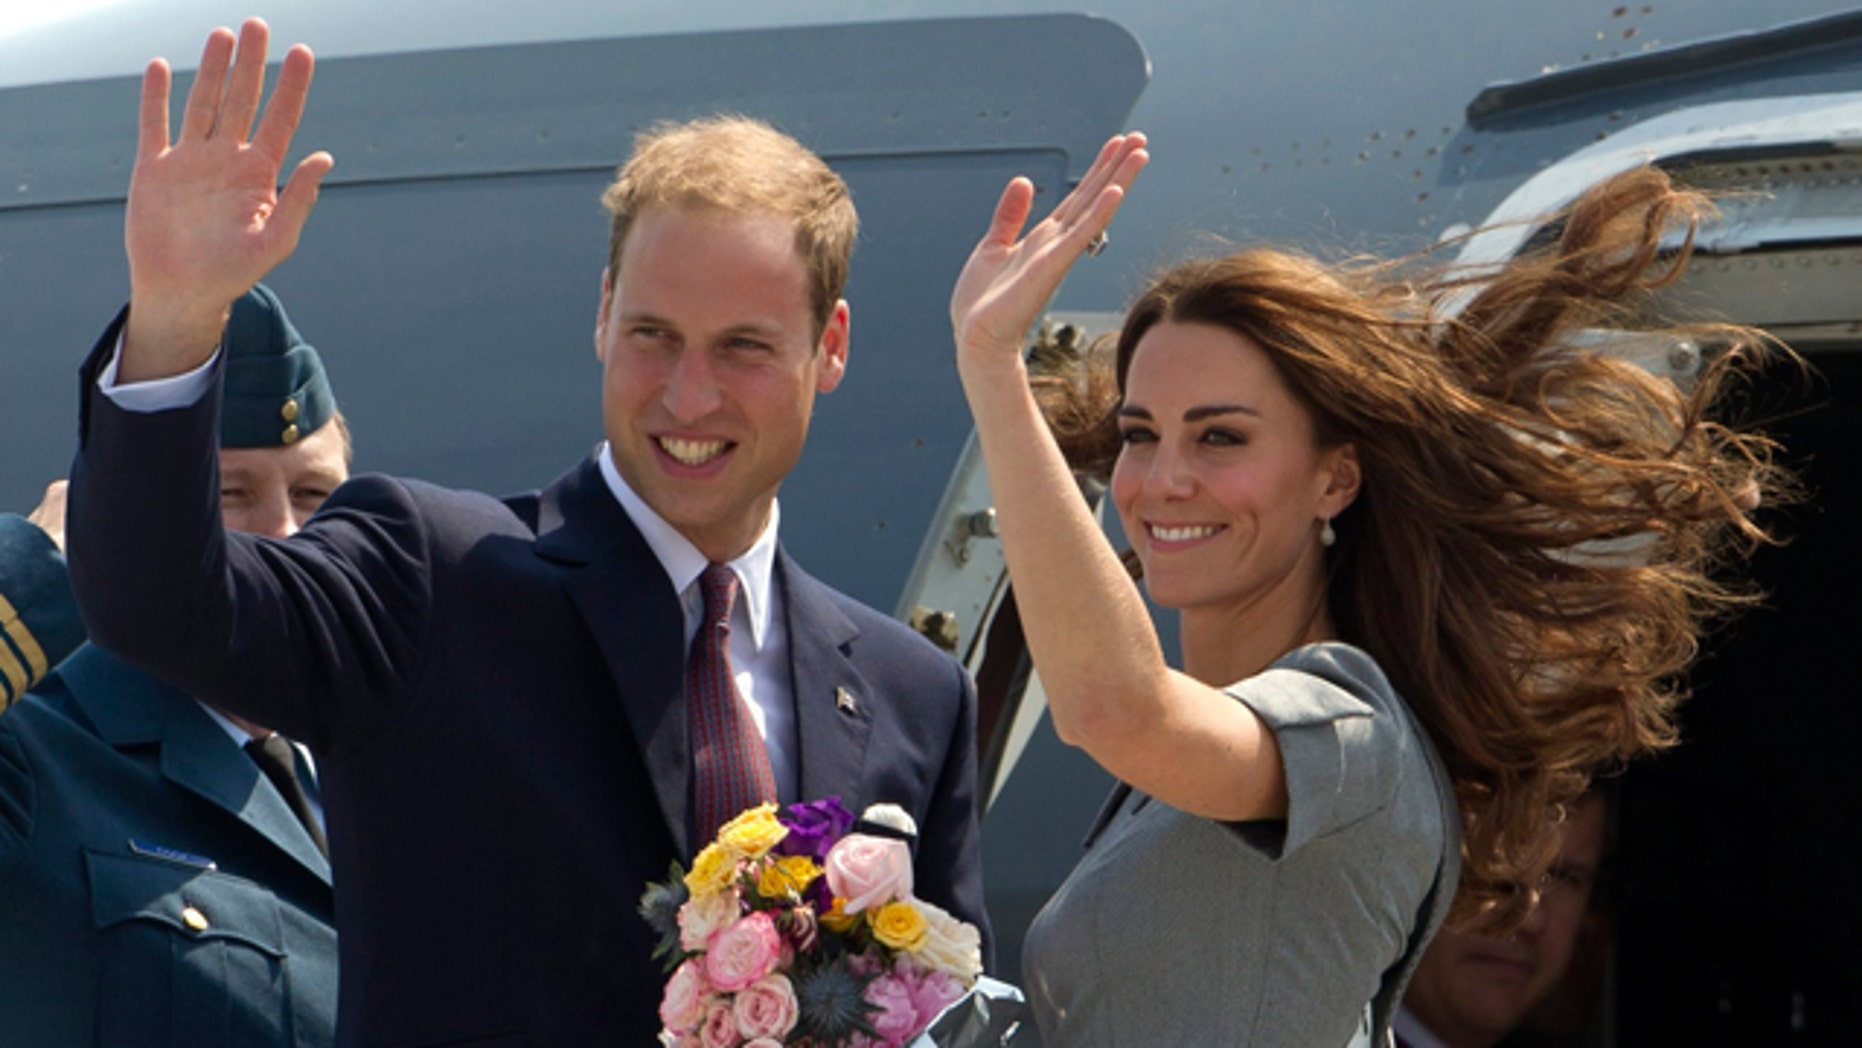 July 2: Prince William and Kate, the Duke and Duchess of Cambridge, wave as they board their plane as they leave Ottawa, Ontario , en route to Montreal as they continue their Royal Tour of Canada.